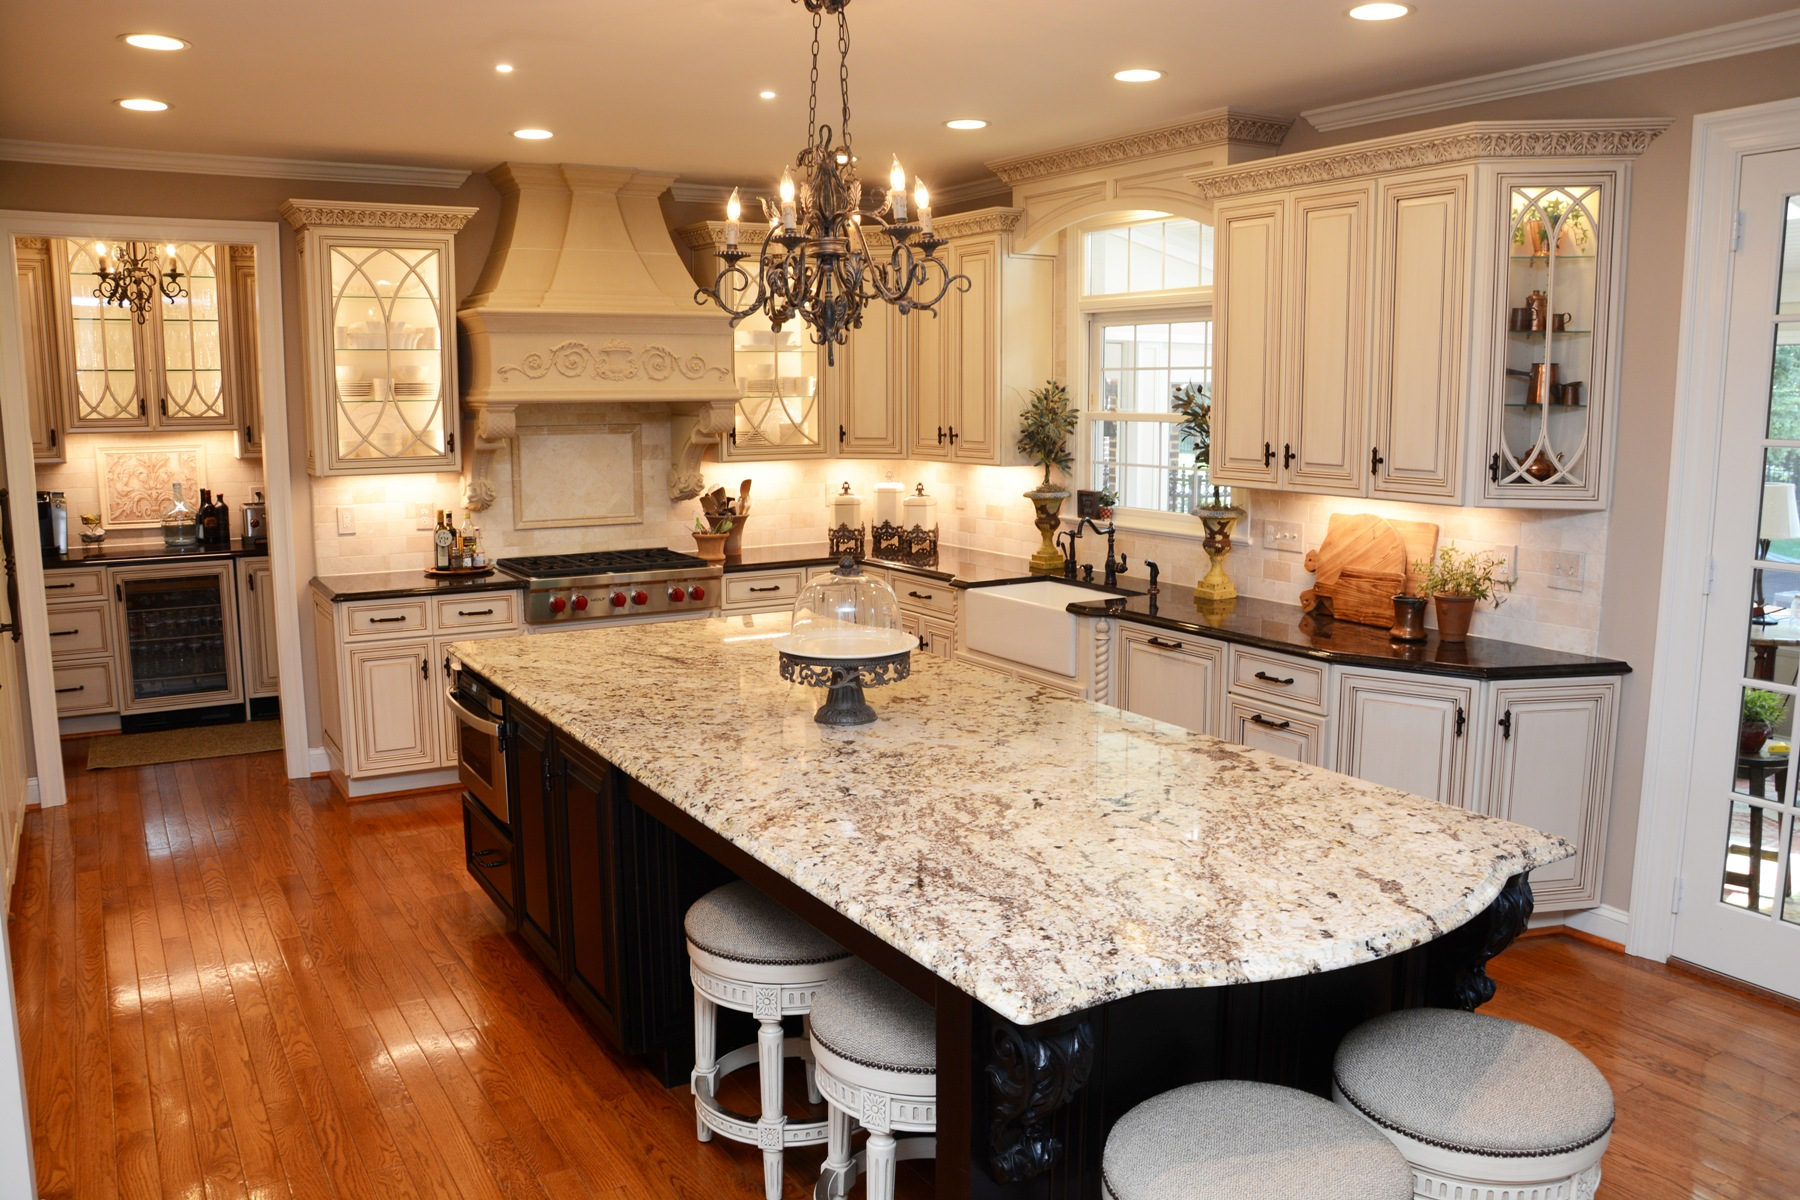 Charmant Creative In Counters Is A Family Run Business Located In Mount Airy, MD For  Over 25 Years, We Proudly Serve The Maryland, Washington, DC Metro Area, ...